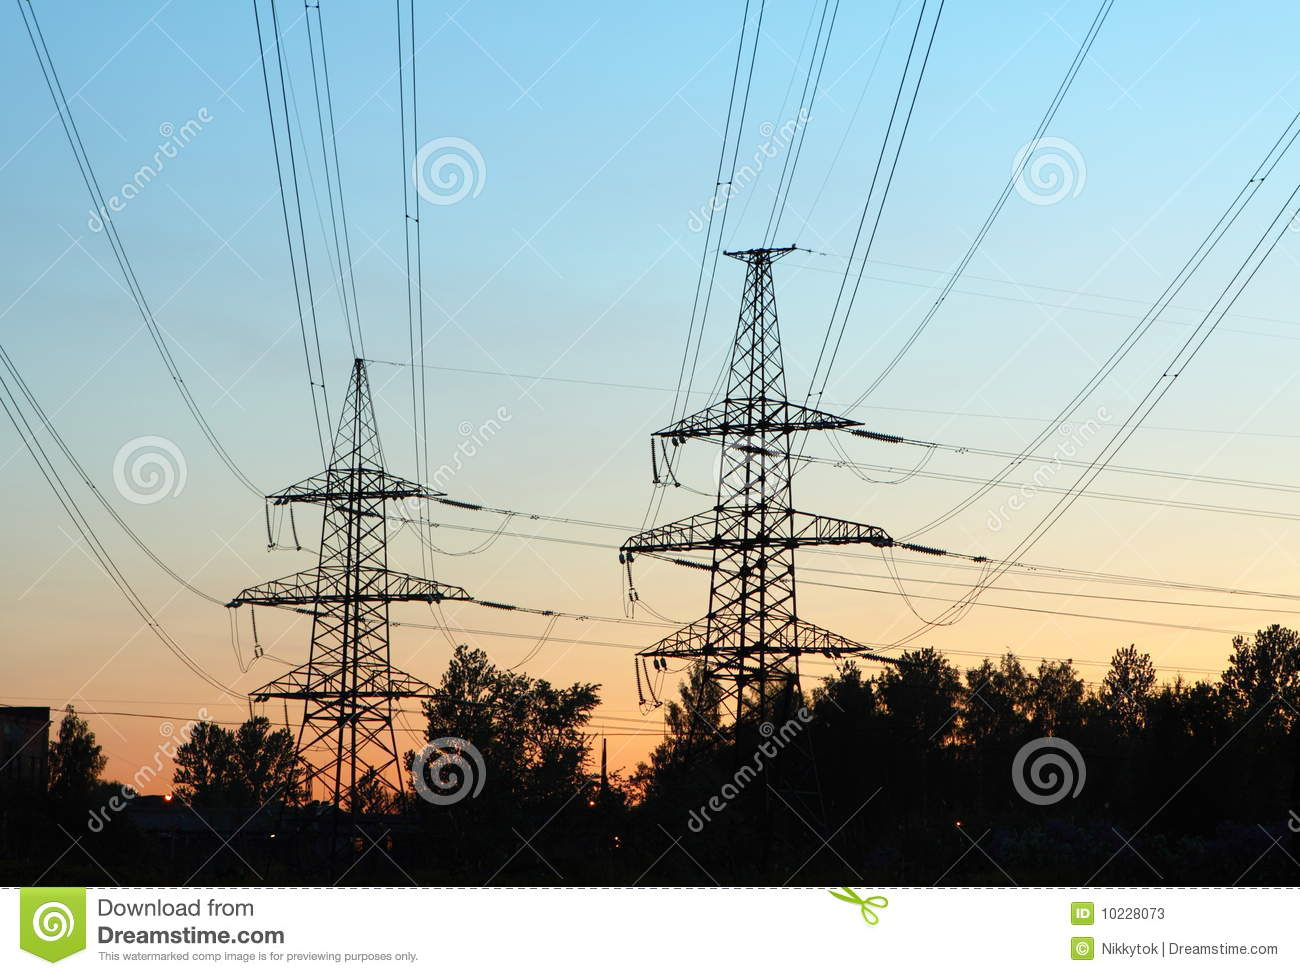 Transmission Line Towers Stock Image Image Of Line Electricity 10228073